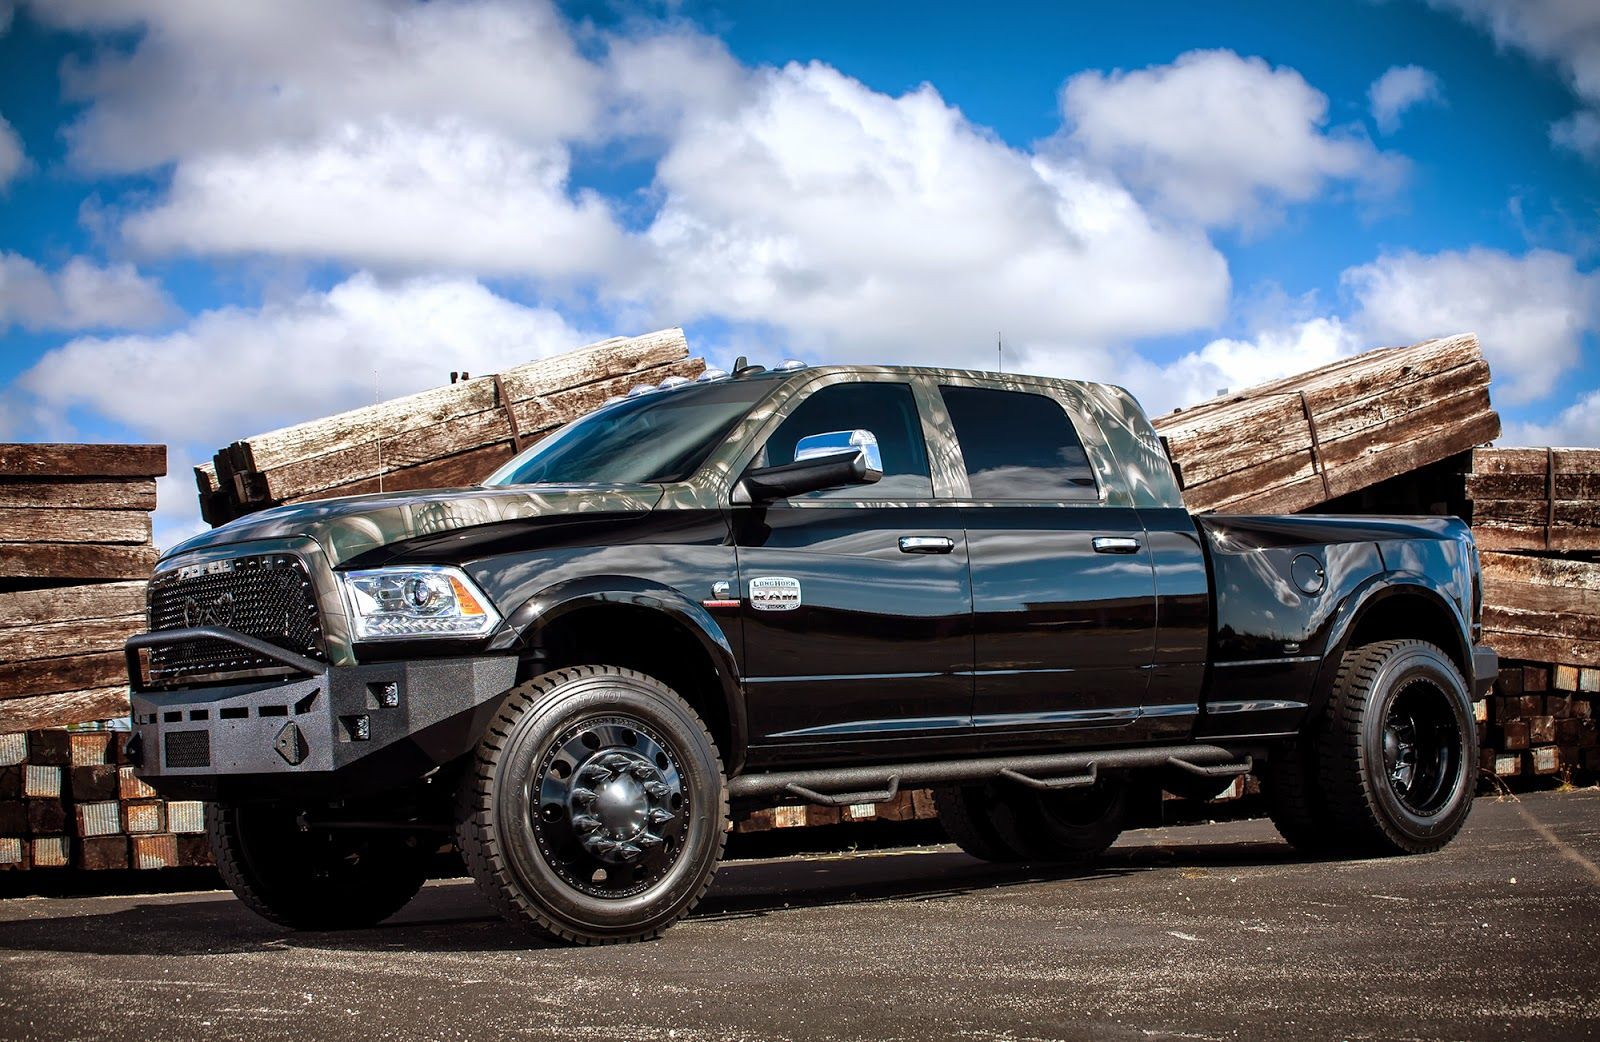 17 best ideas about dodge ram longhorn on pinterest dodge trucks lifted lifted dodge diesel and dodge 3500 - 2015 Dodge Ram 3500 Longhorn